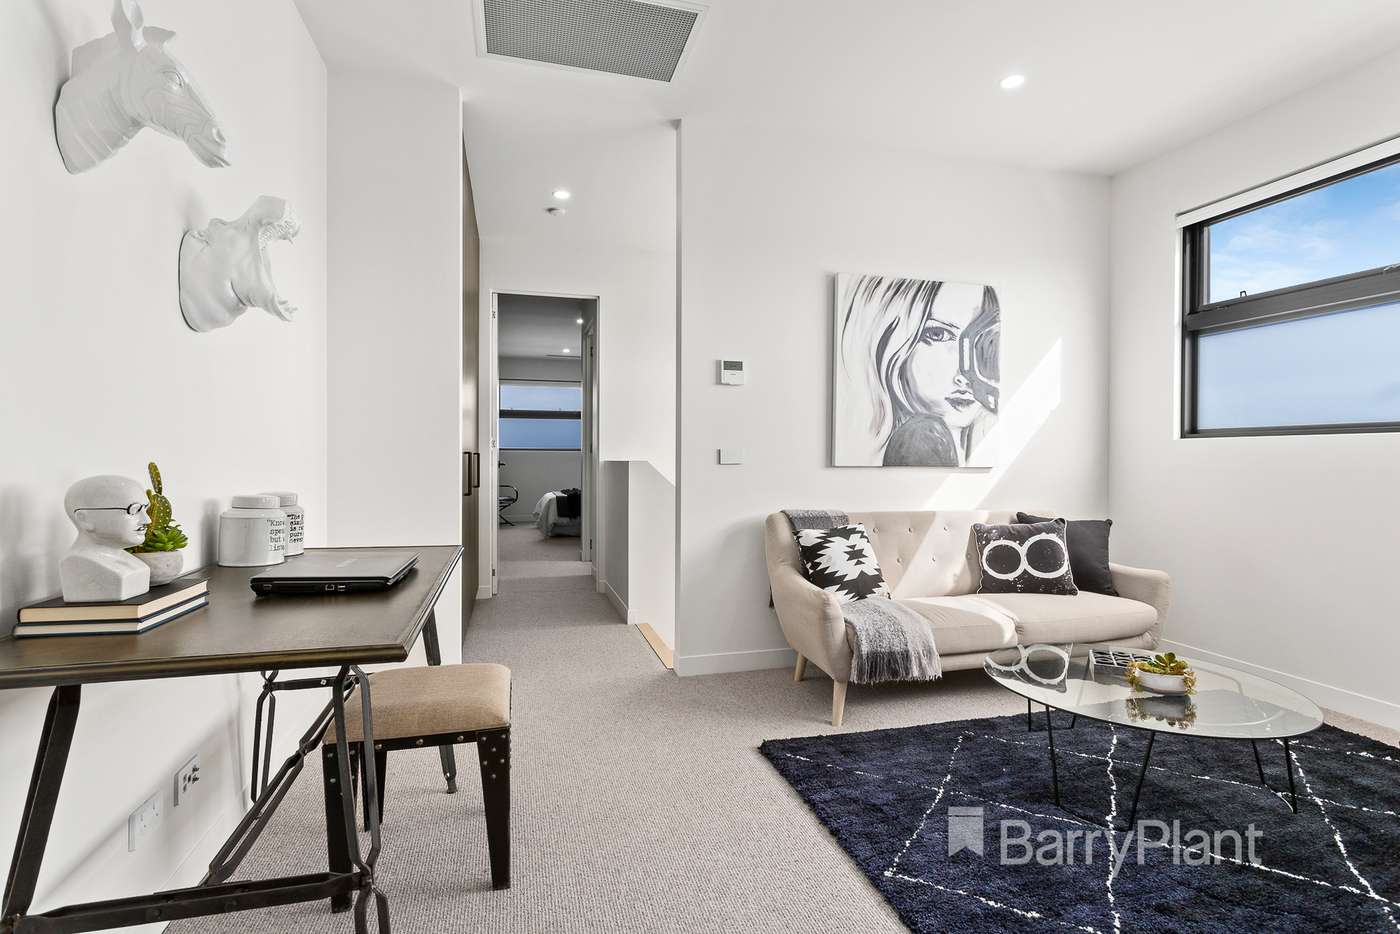 Fifth view of Homely house listing, 168A Separation Street, Northcote VIC 3070